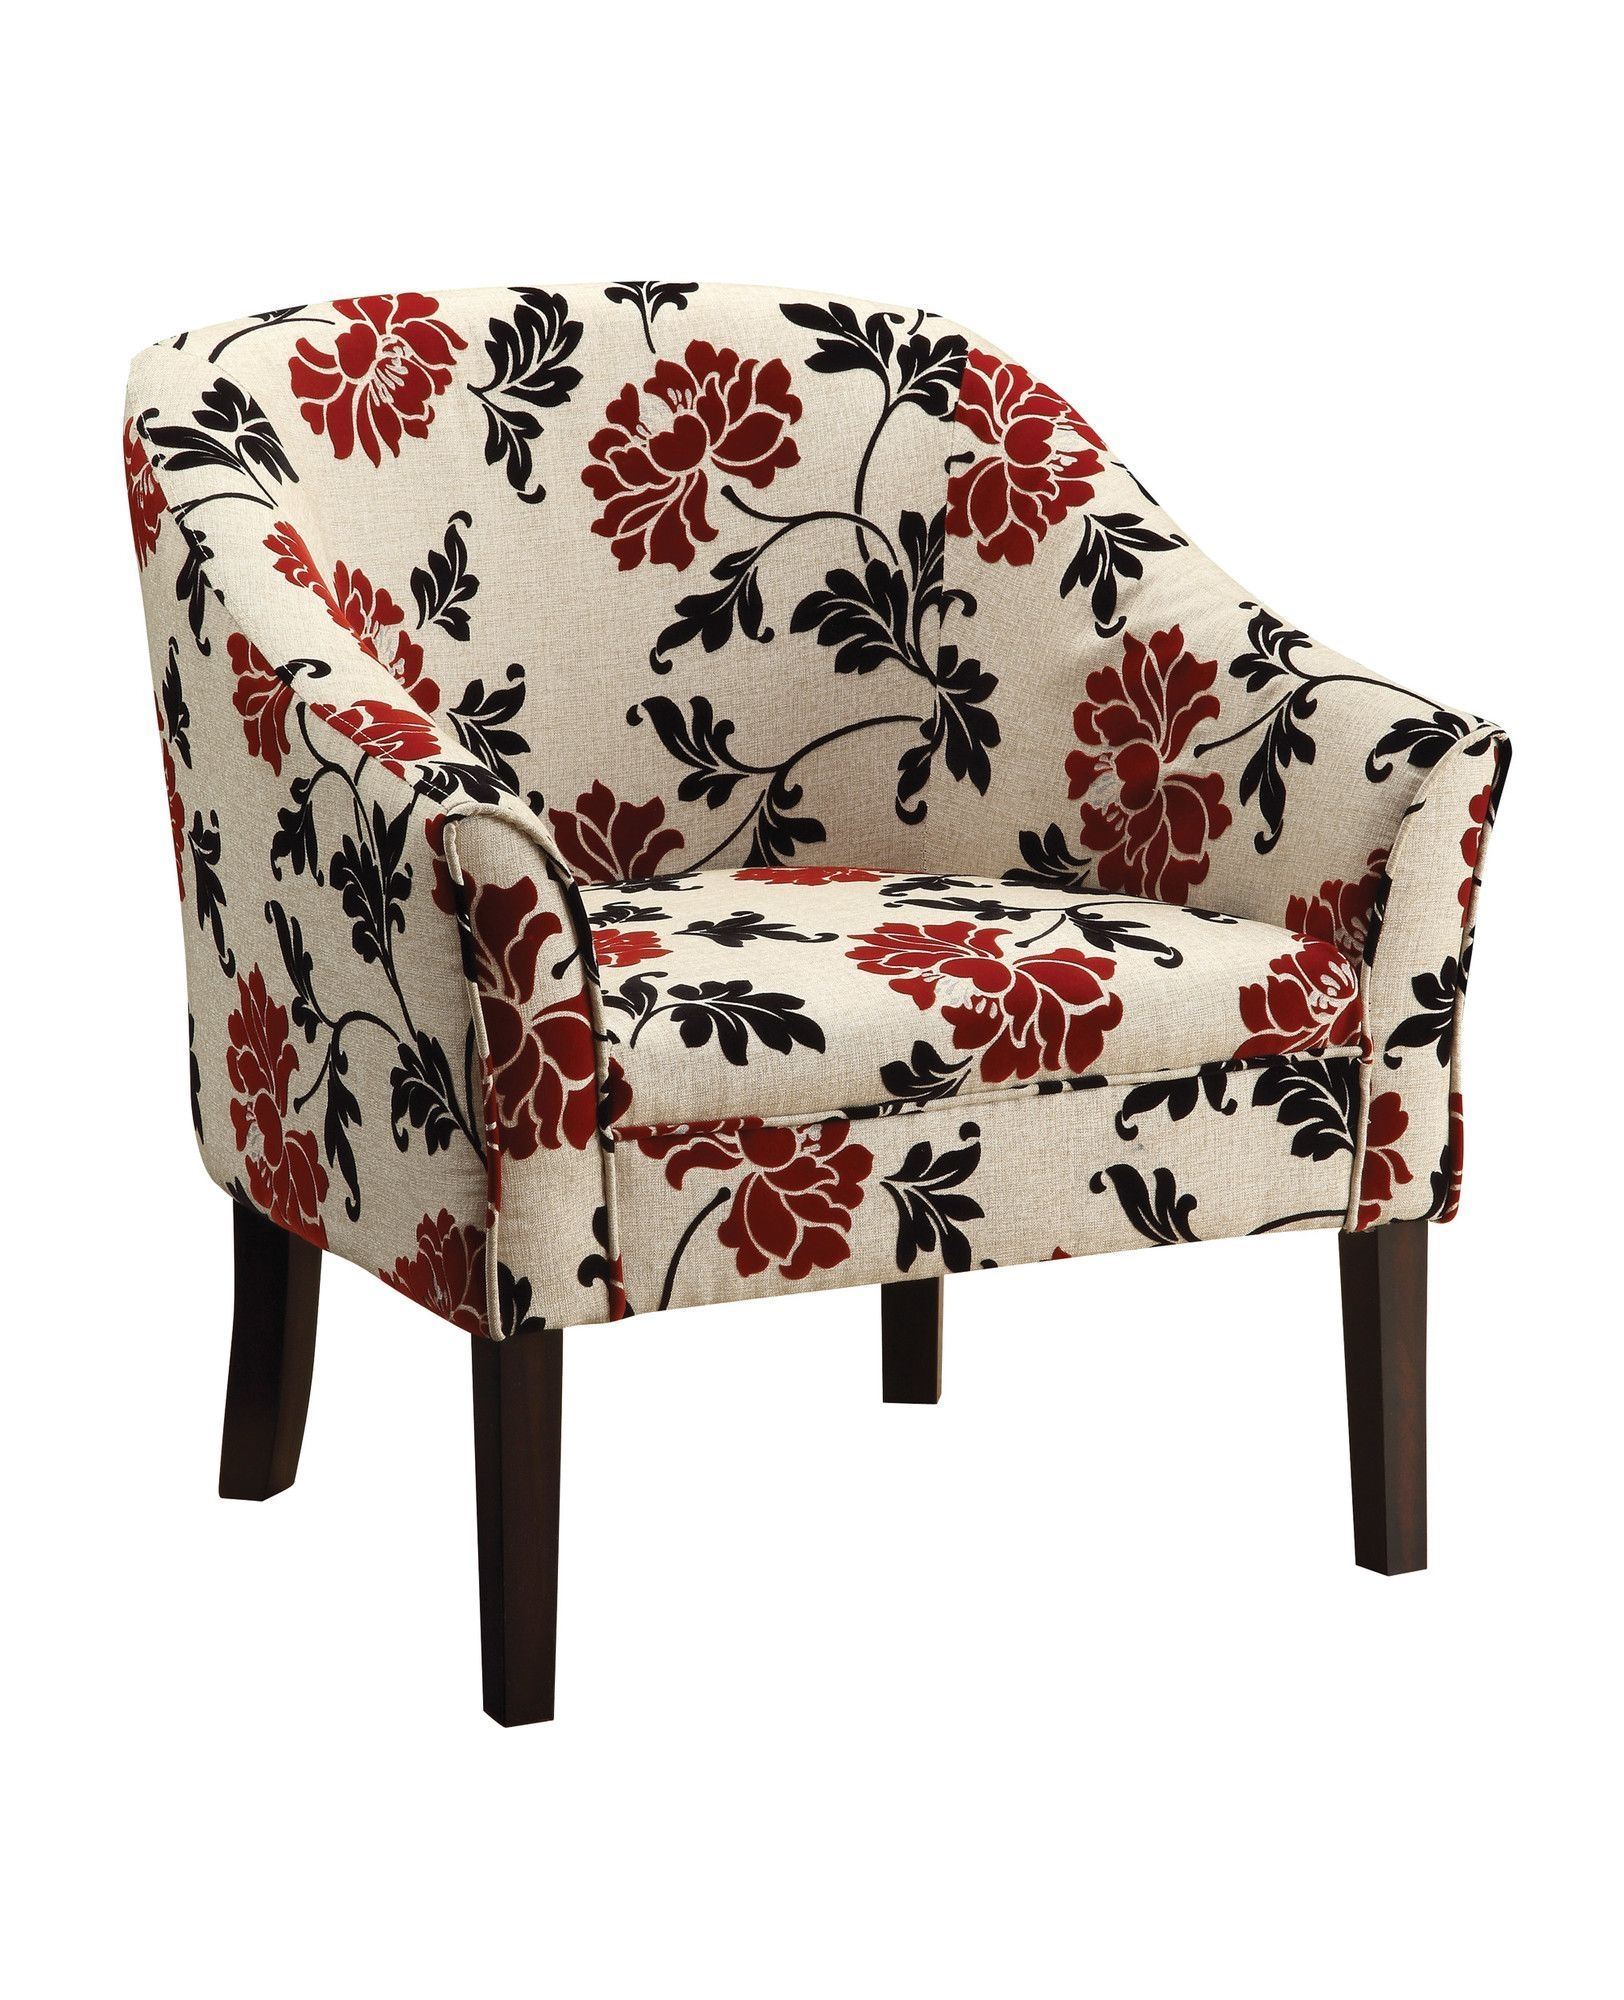 Superb Floral Upholstered Accent Chair